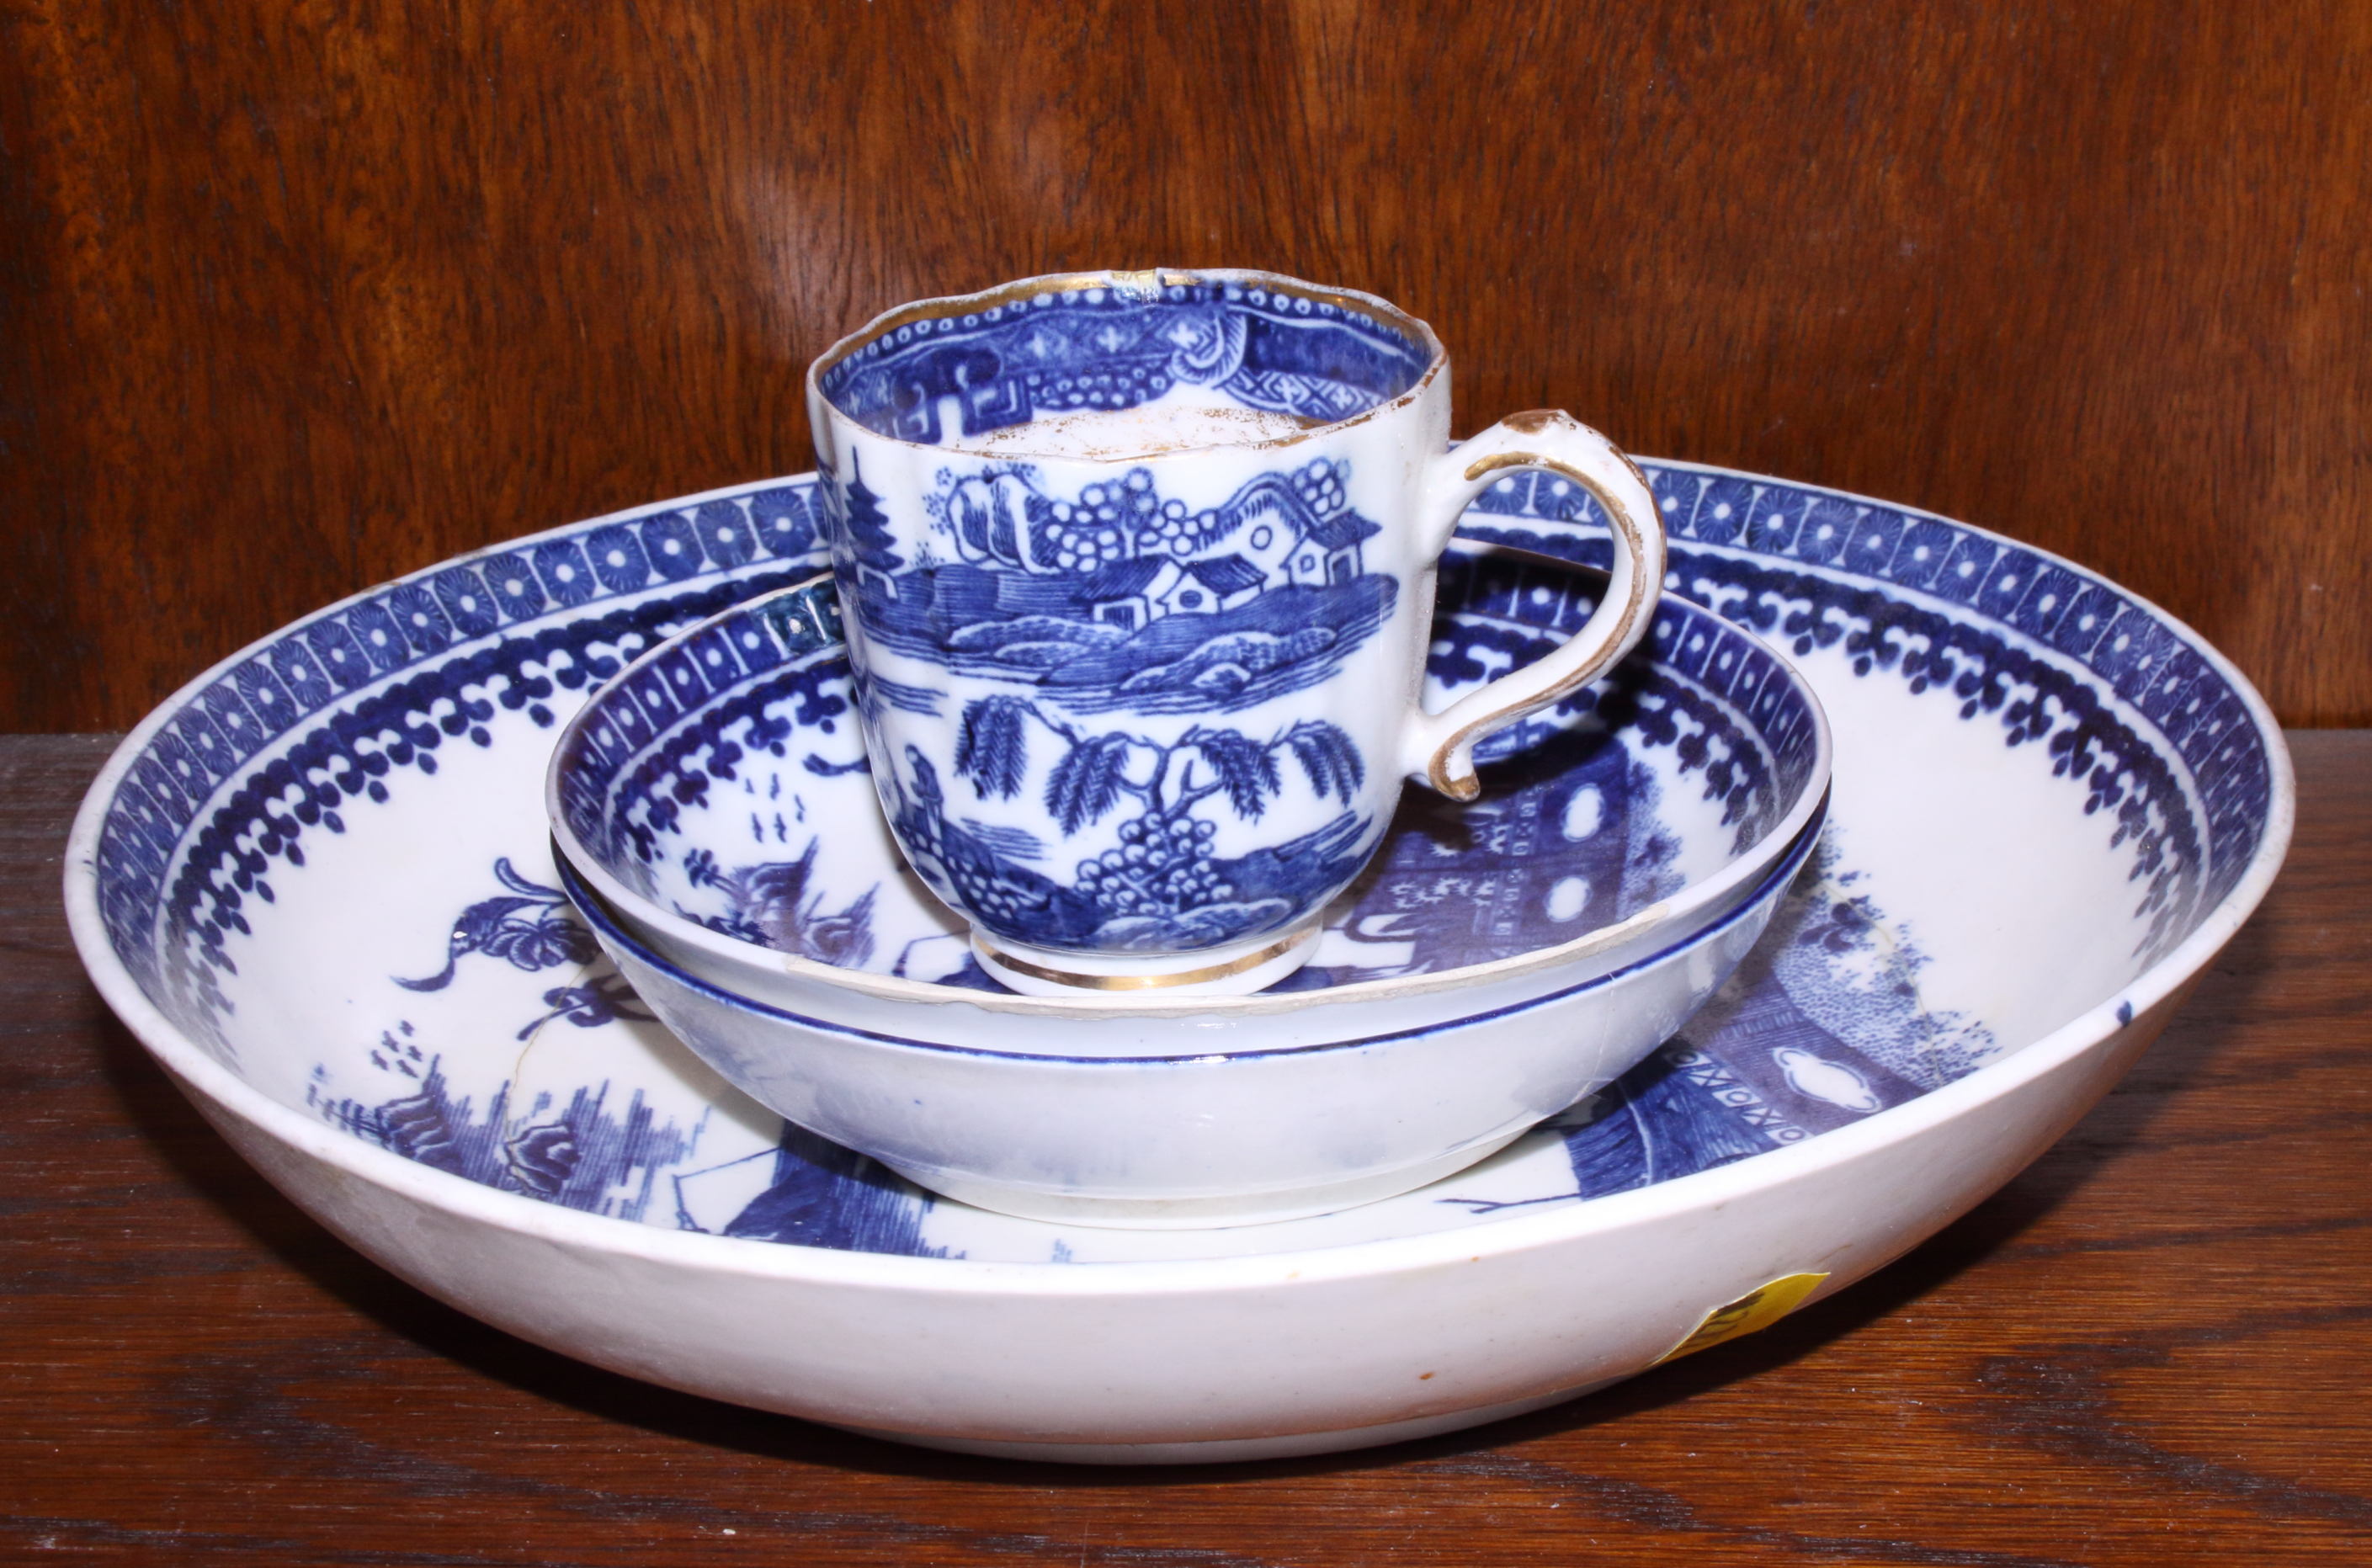 Lot 18 - Four pieces of early 19th century blue and white English porcelain including a saucer dish and